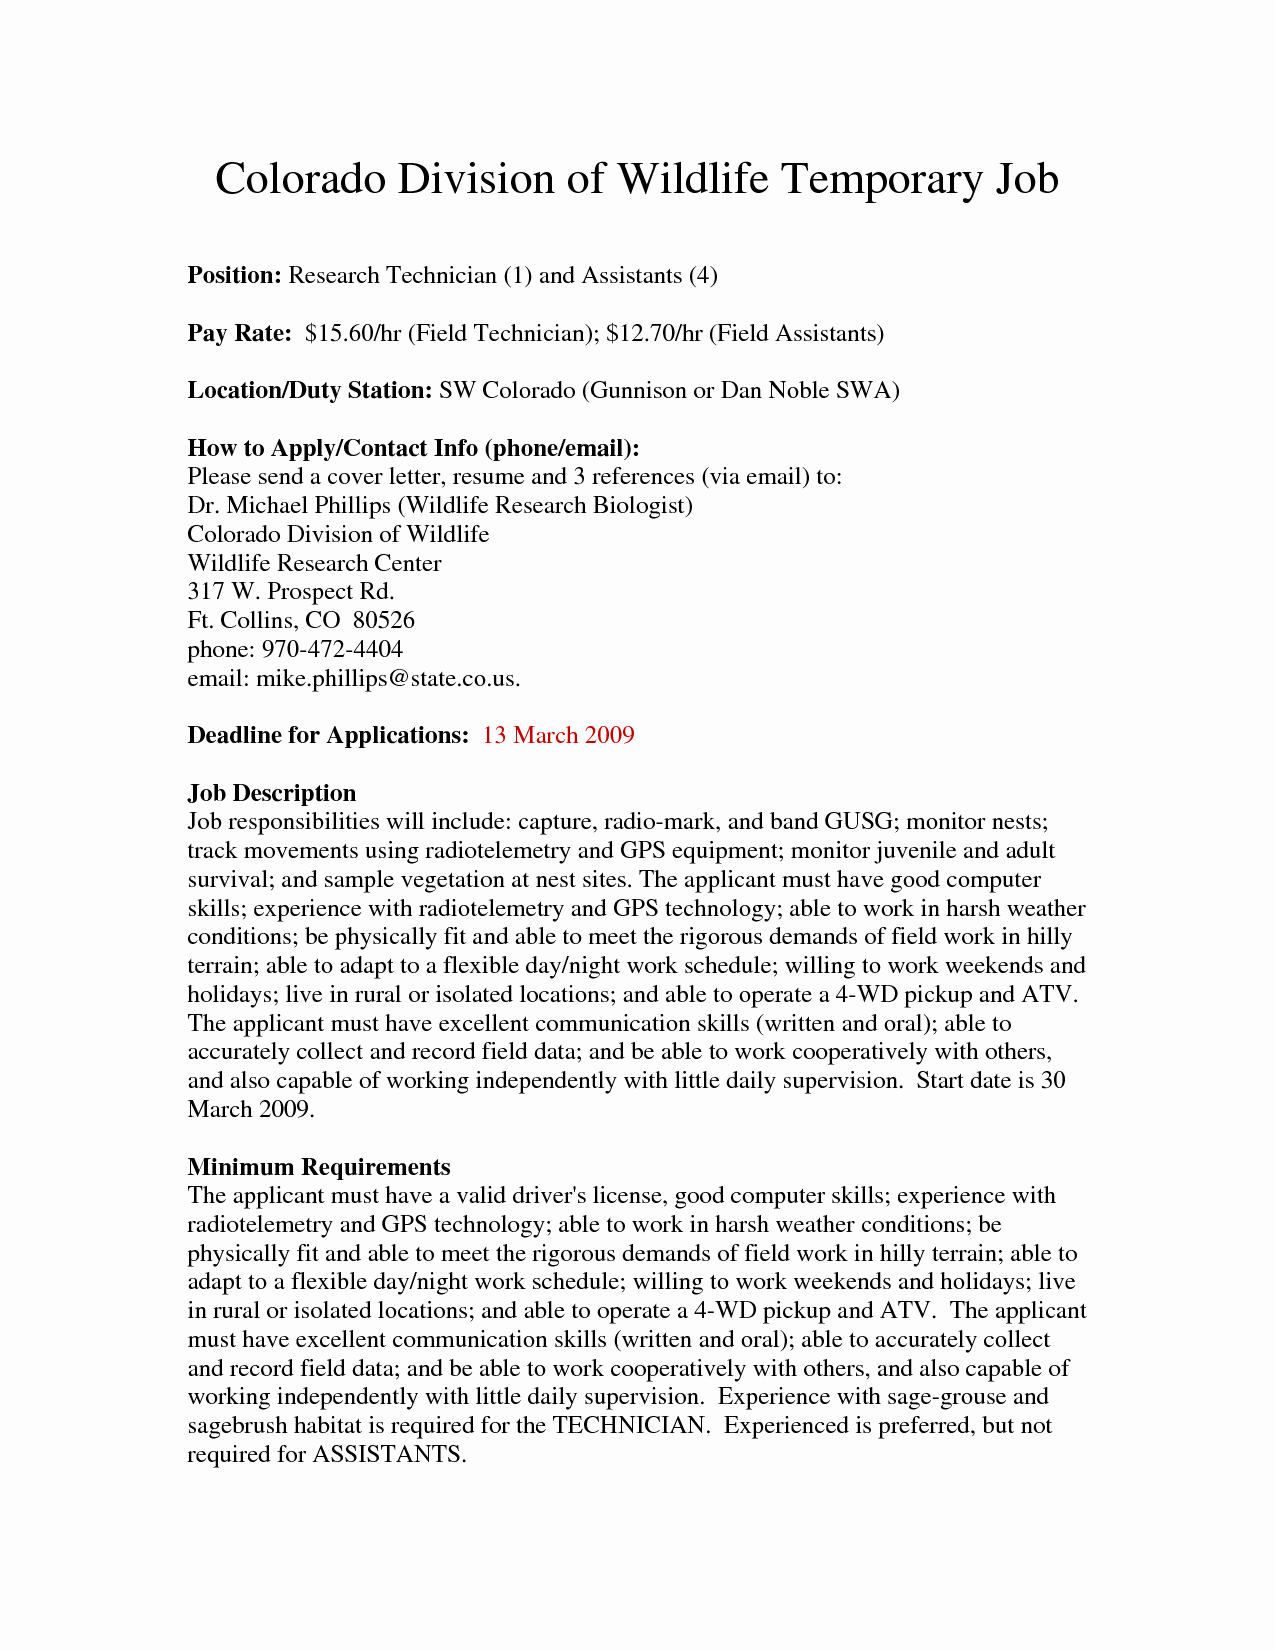 Biological Science Technician Cover Letter Fungram